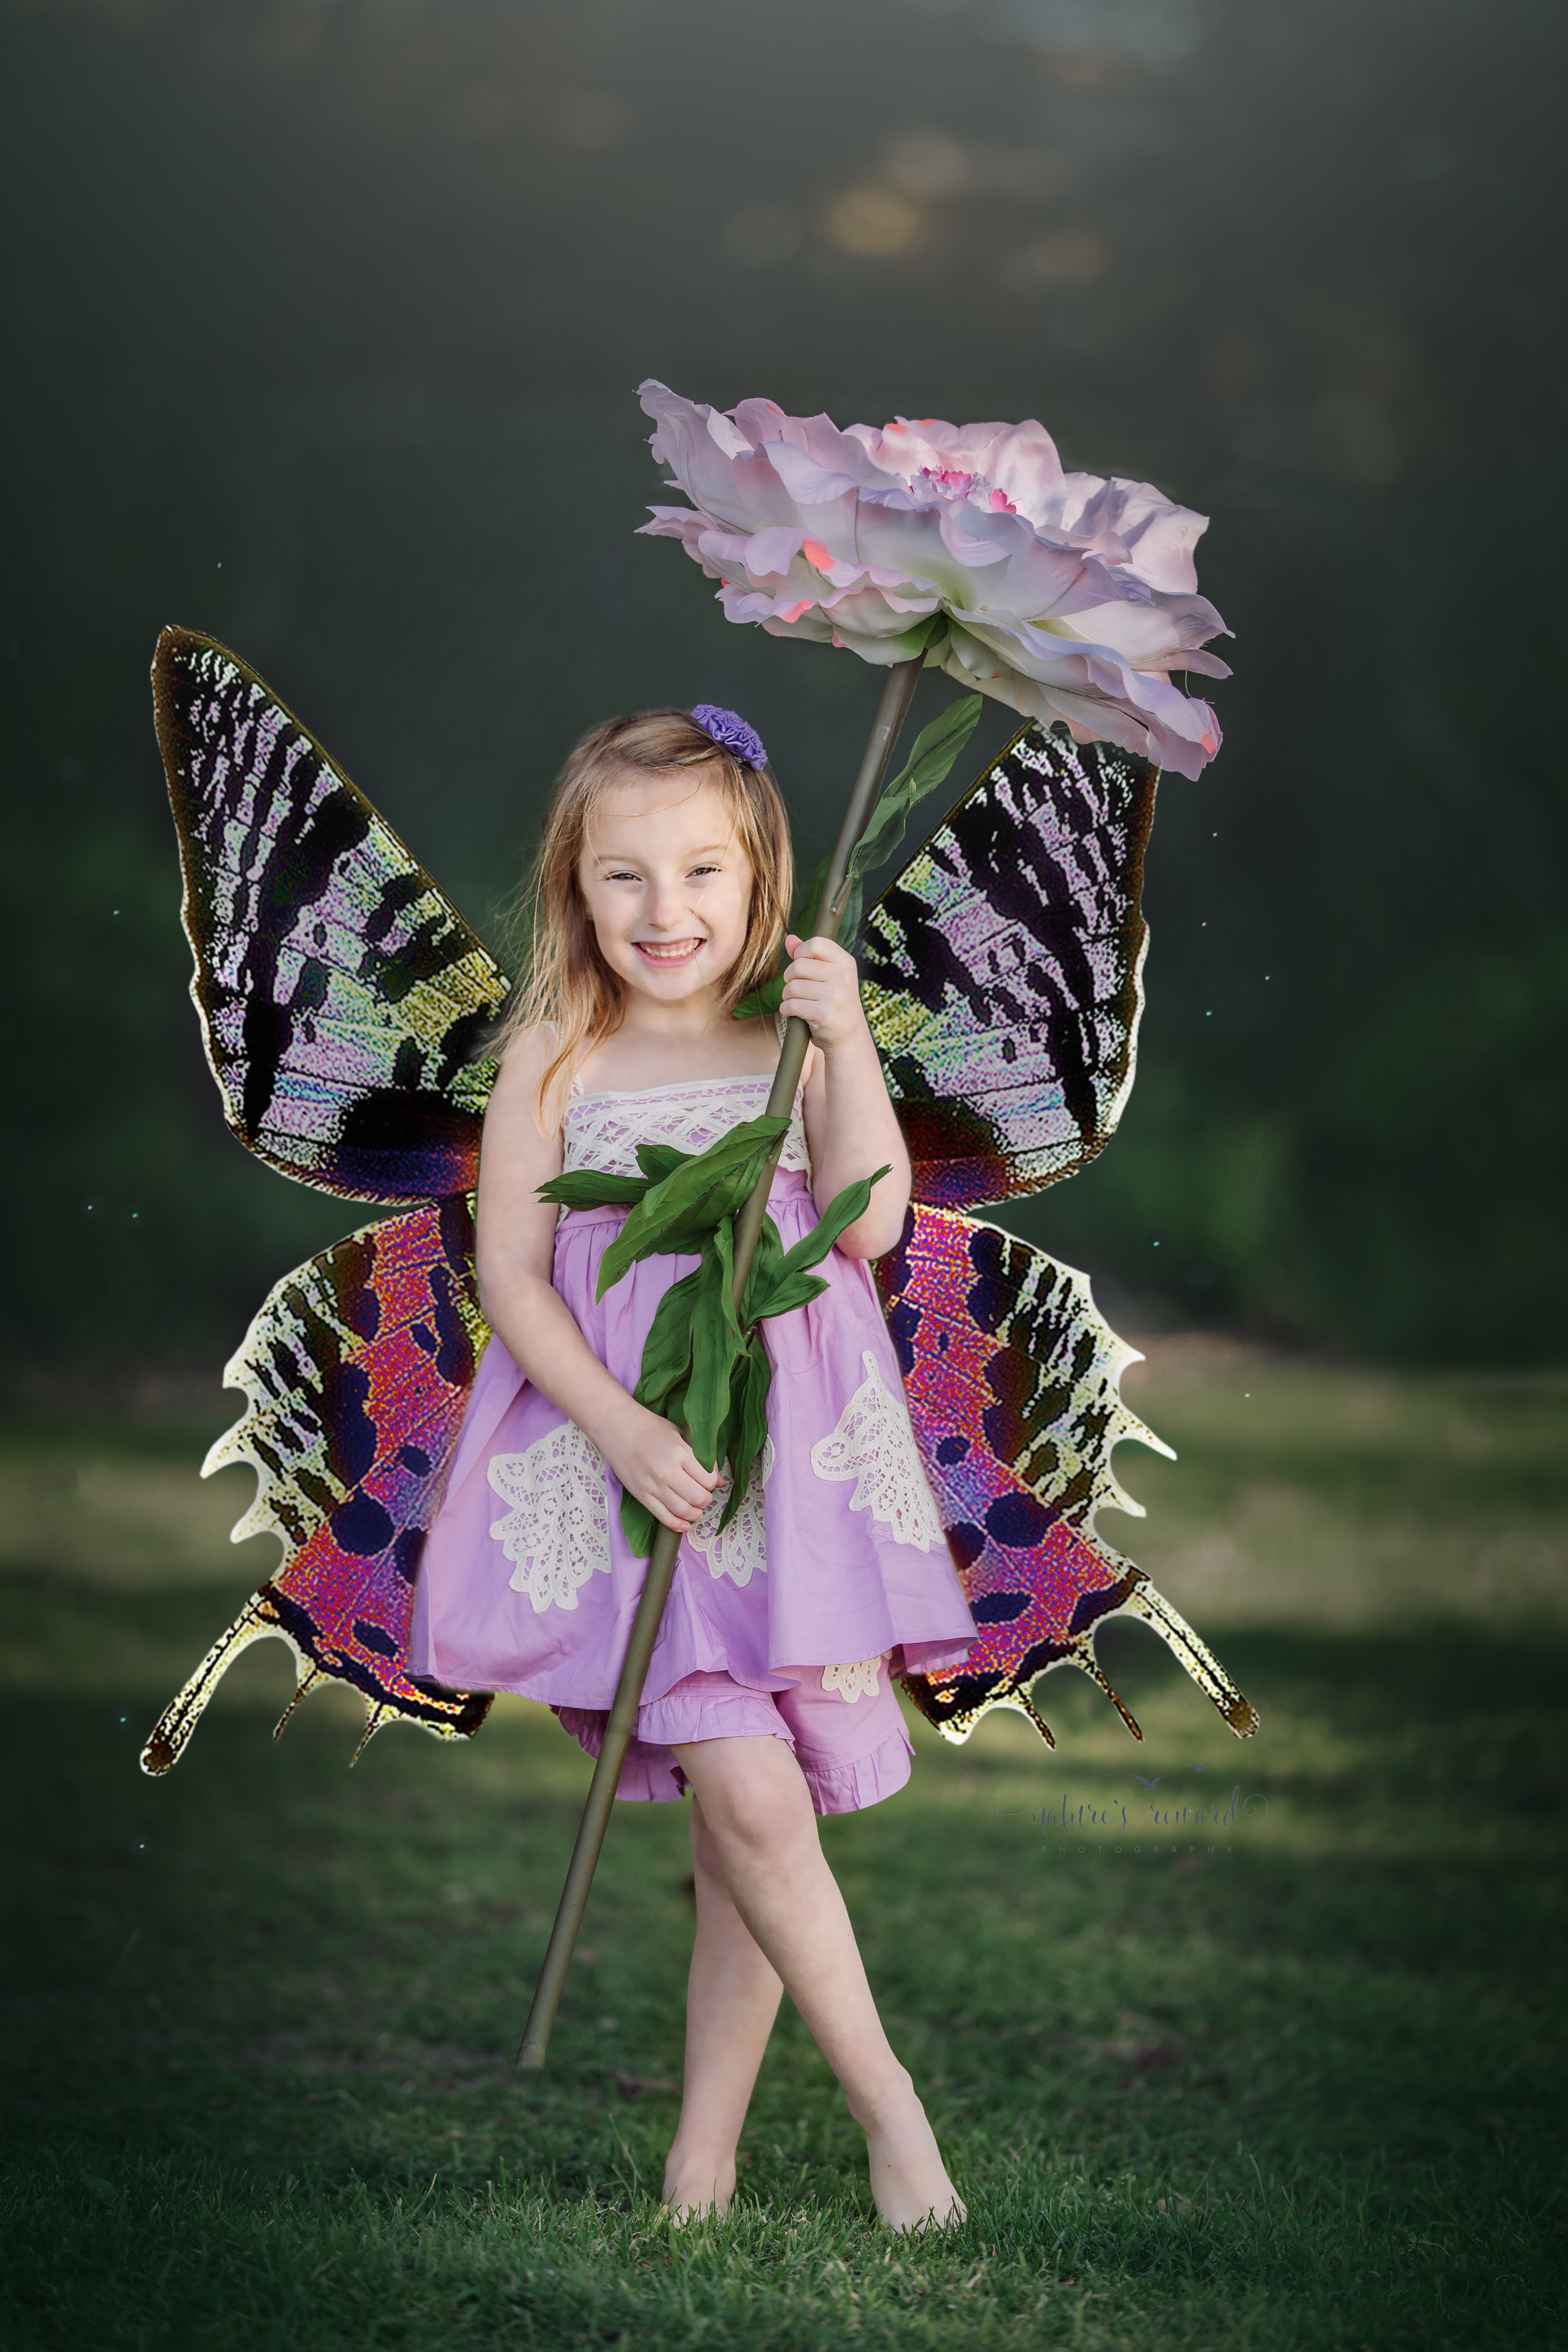 The butterfly pixie holding her flower umbrella in a purple dress and bloomers in this composite portrait by Nature's Reward Photography, a Southern California Photographer